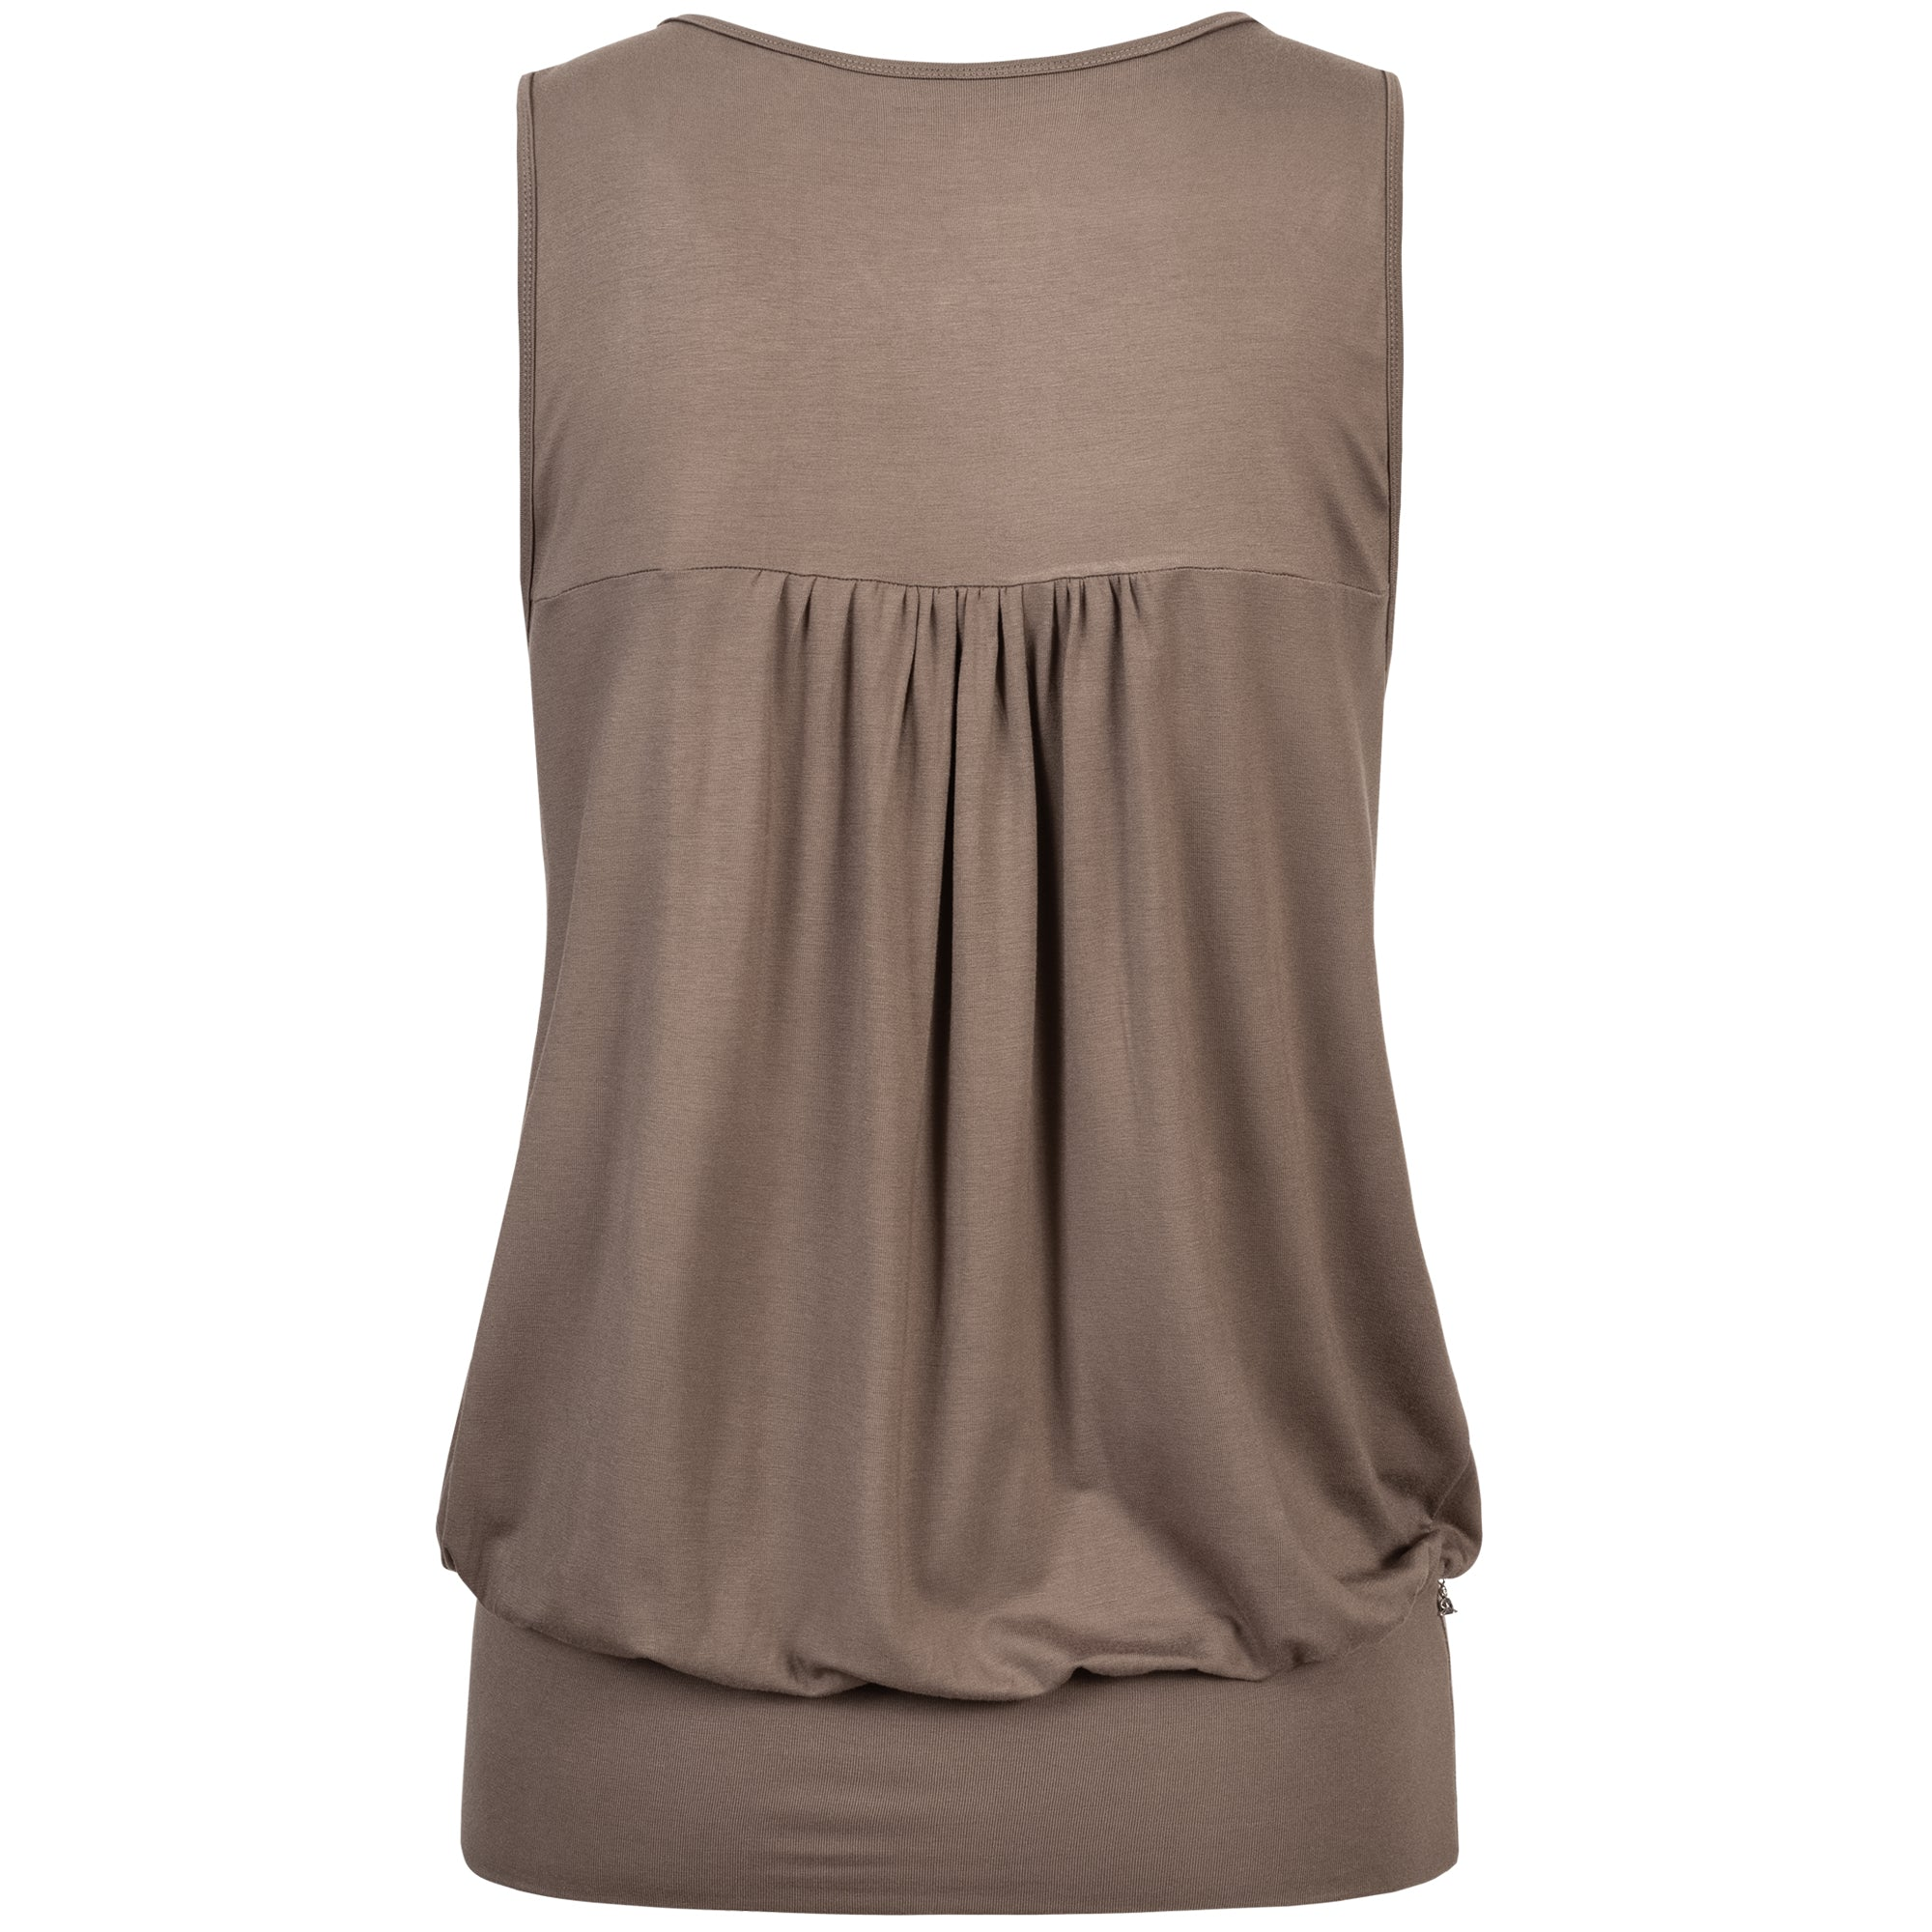 Yoga Top Khaki